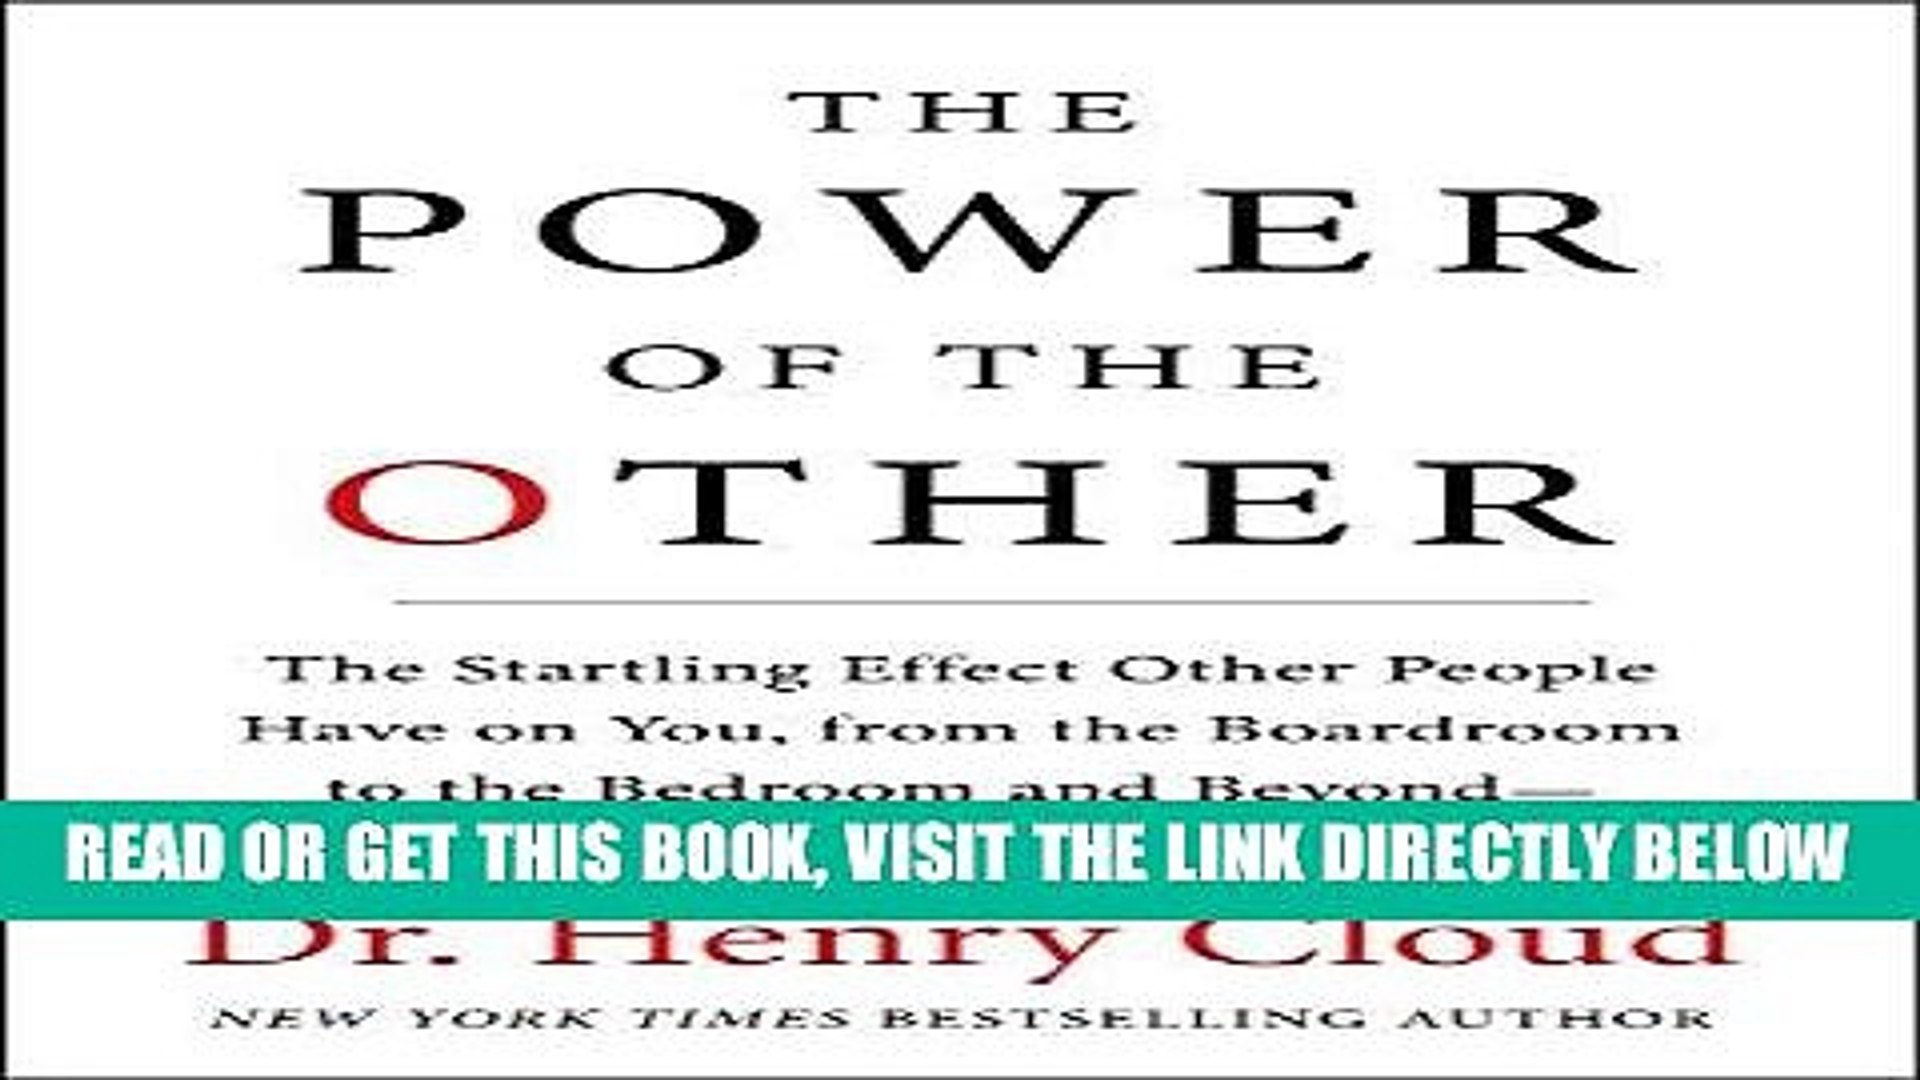 [Free Read] The Power of the Other: The startling effect other people have on you, from the